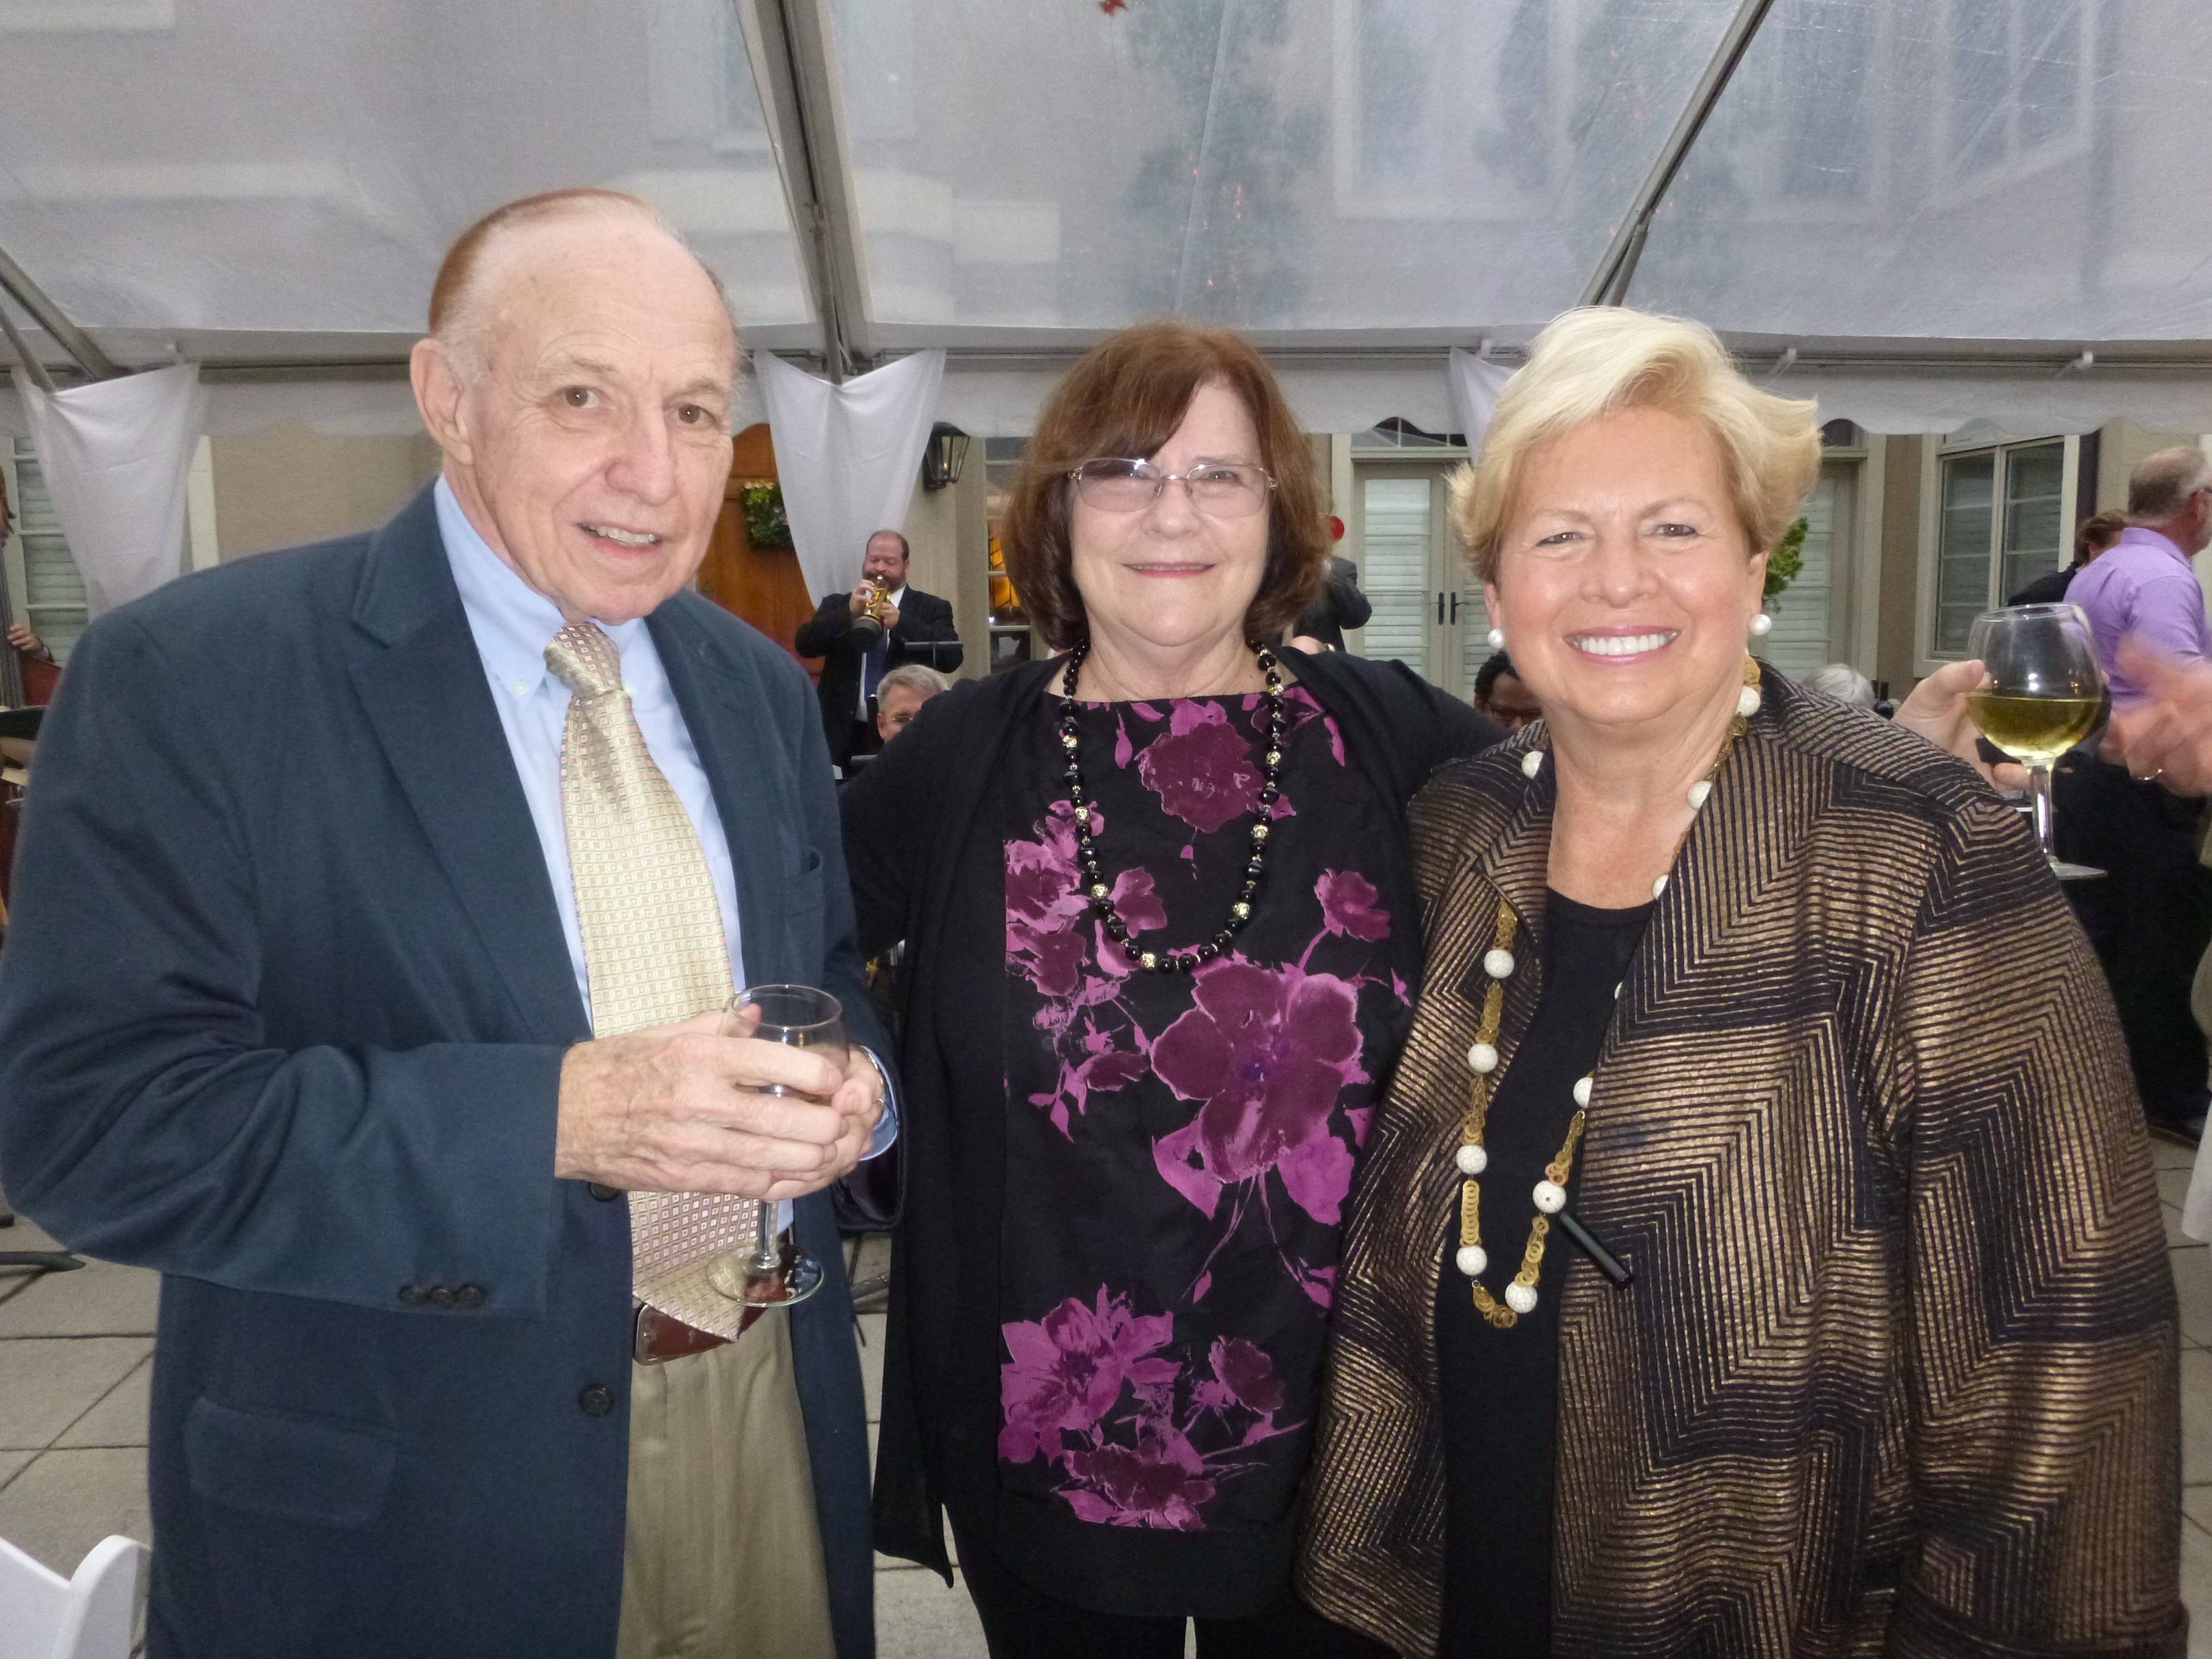 At the Knoxville Jazz Orchestra's Evening Under the Stars' are Gerald and Rachel Gibson with Joan Cronan.